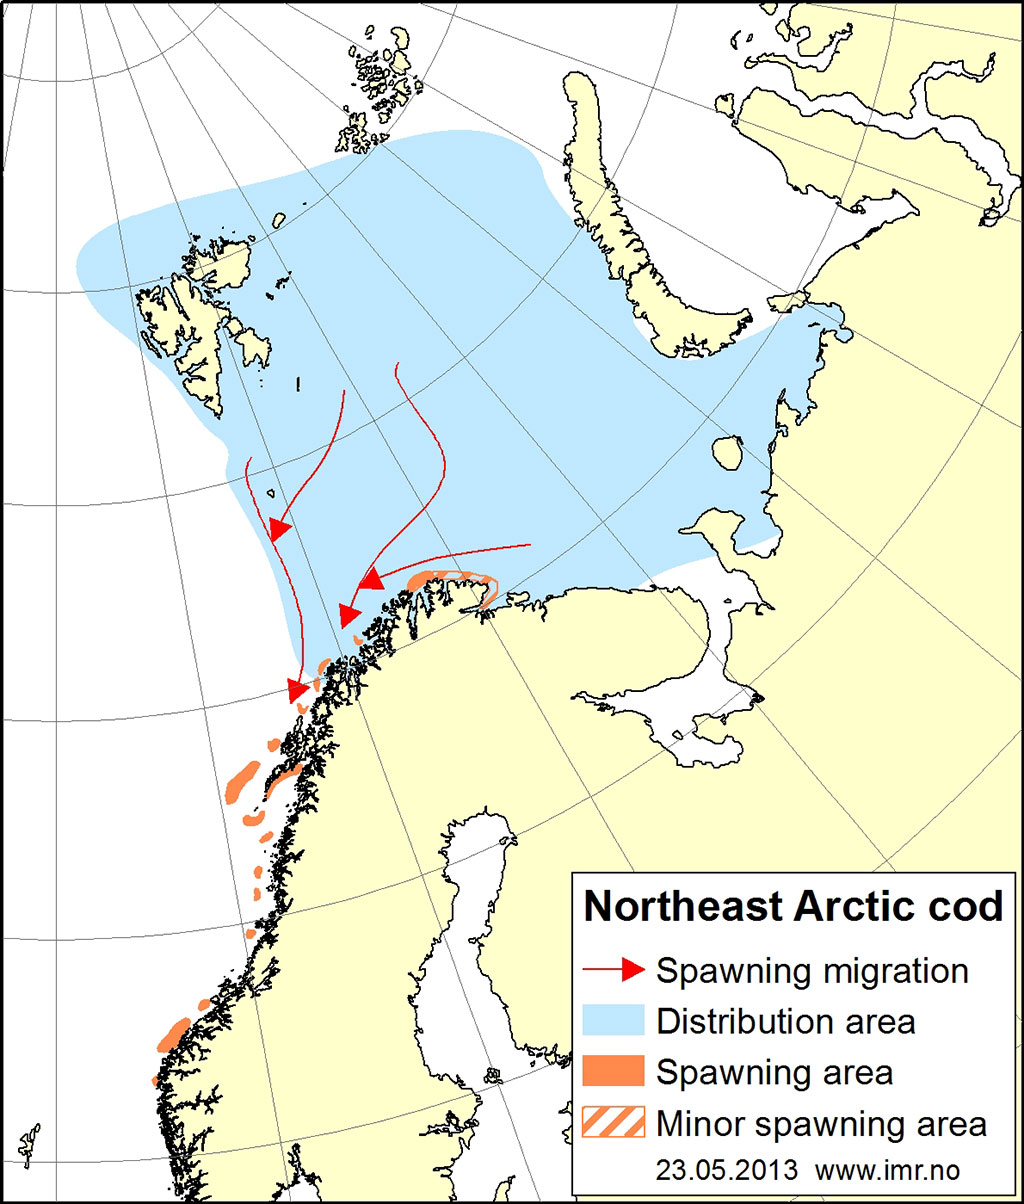 Figure 2.4.13. Distribution area for Northeast Arctic cod.